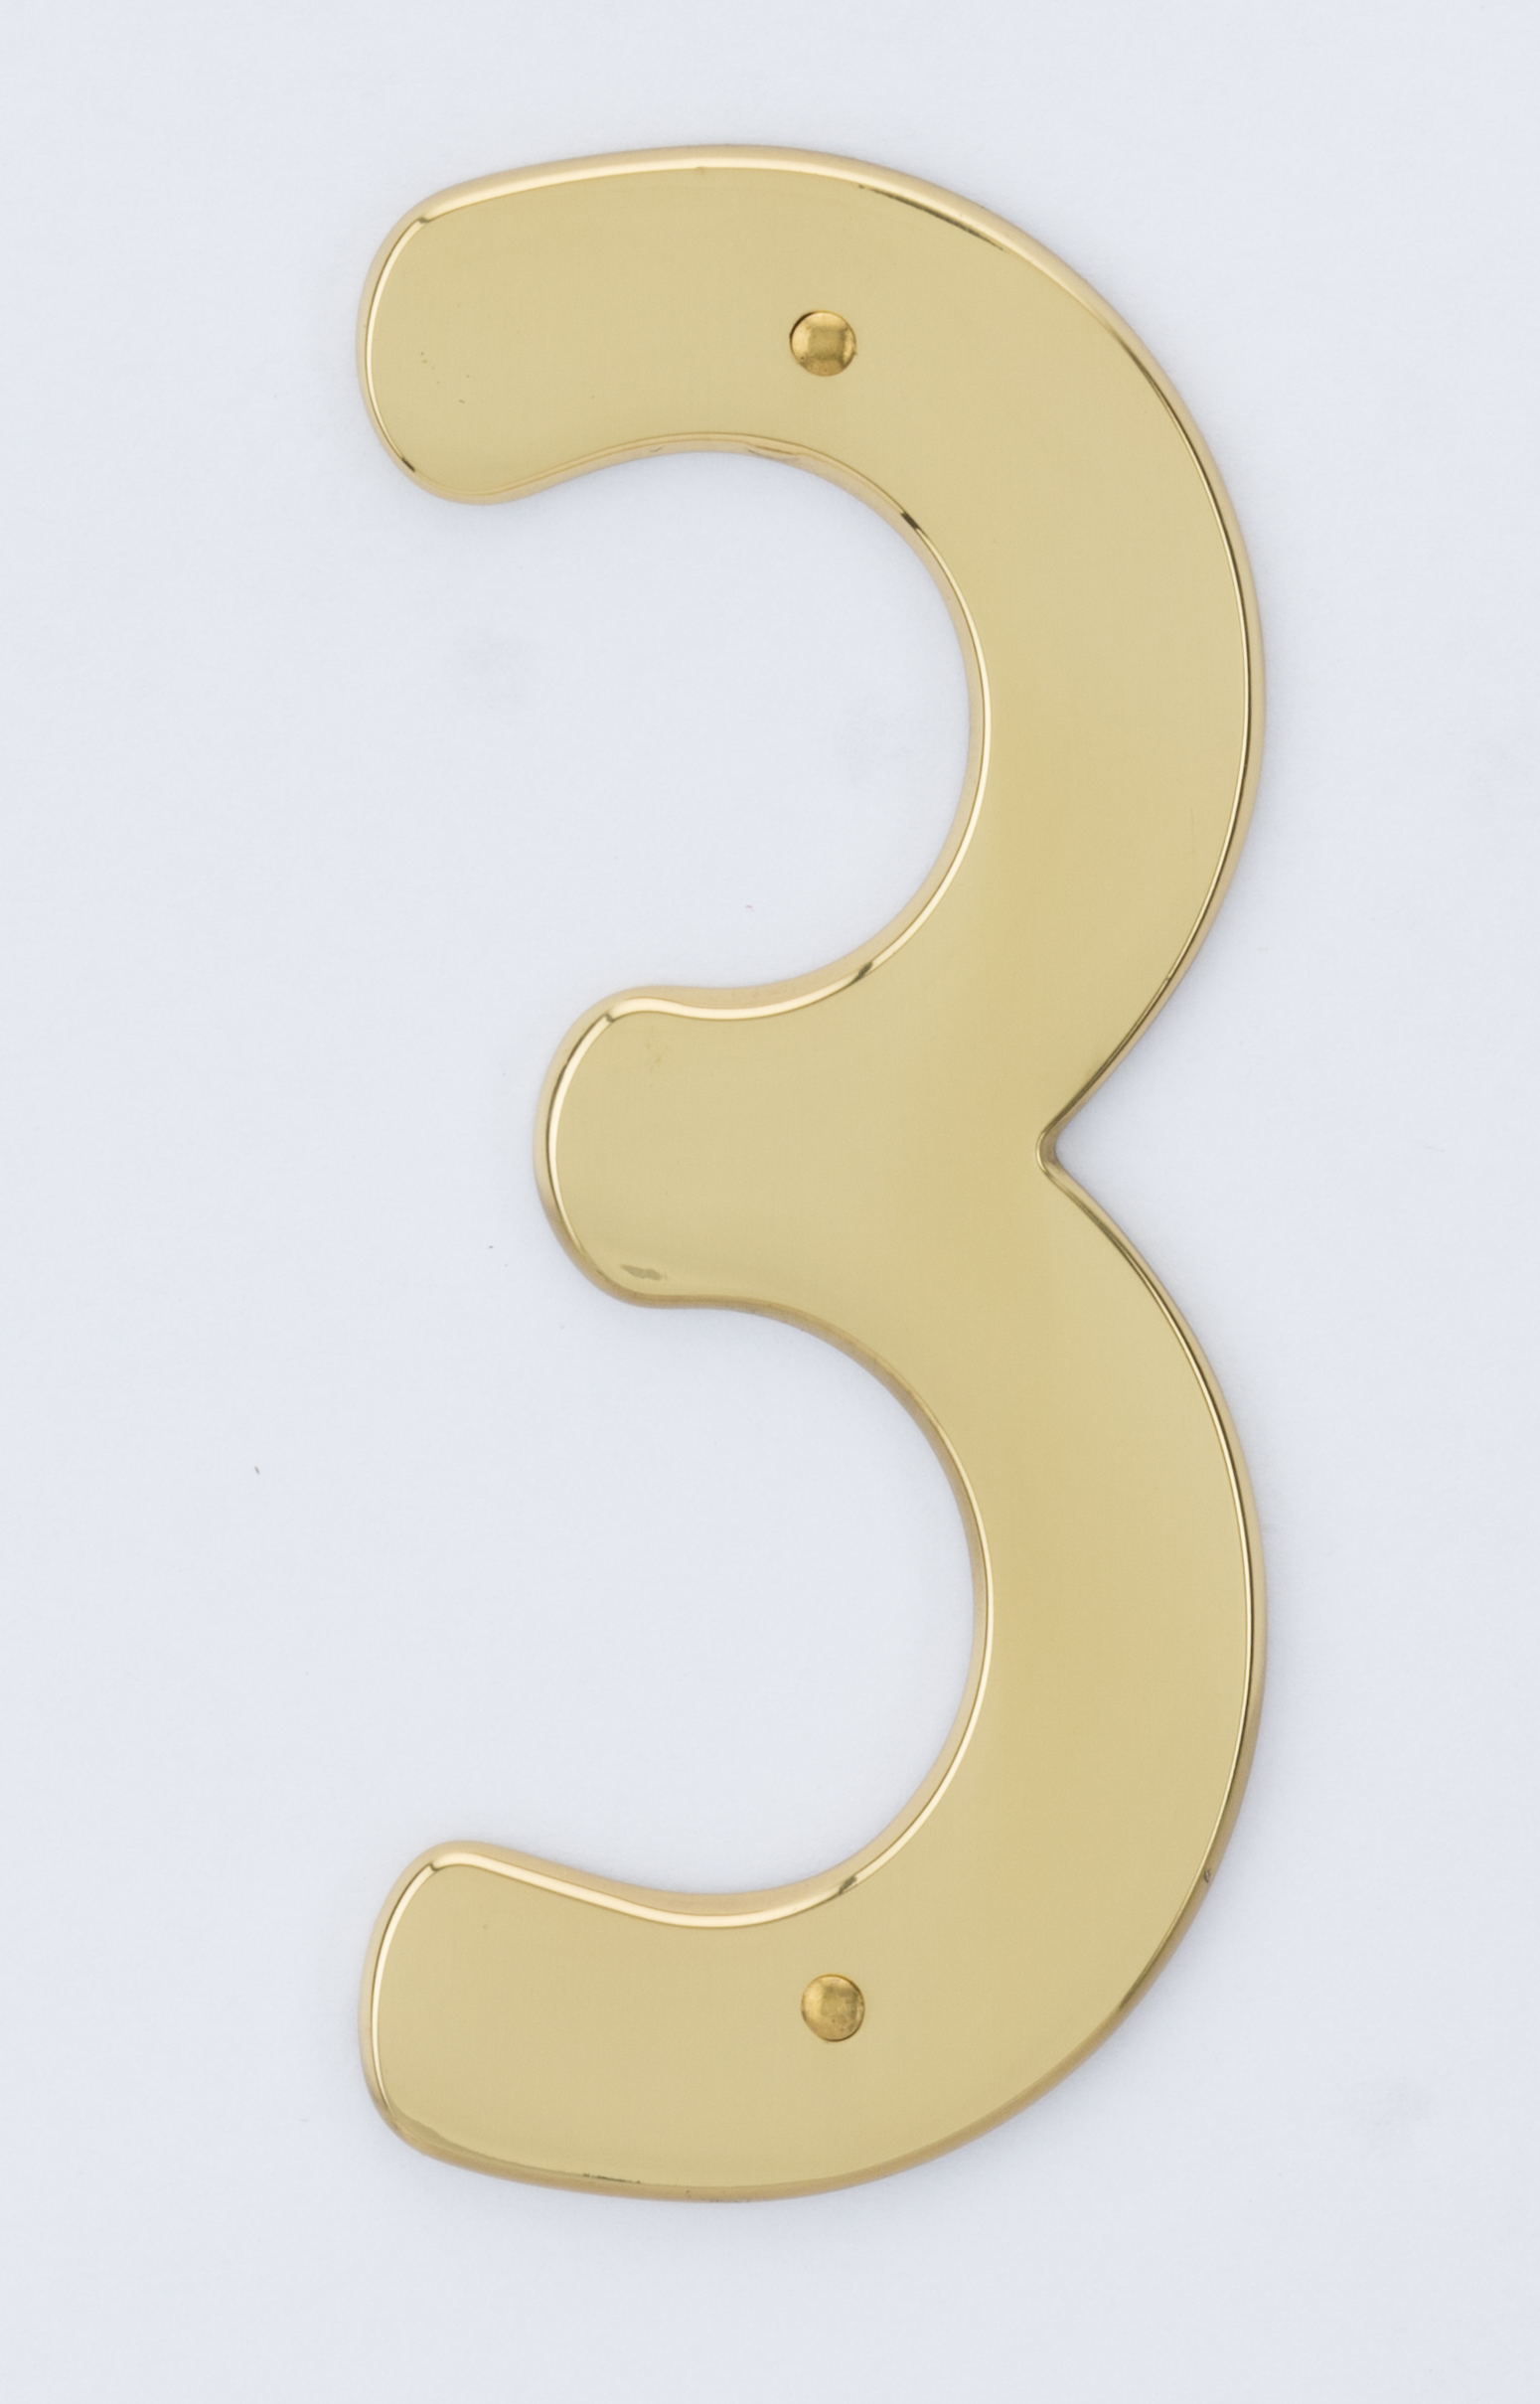 Image House Number 3.5 inch # 3